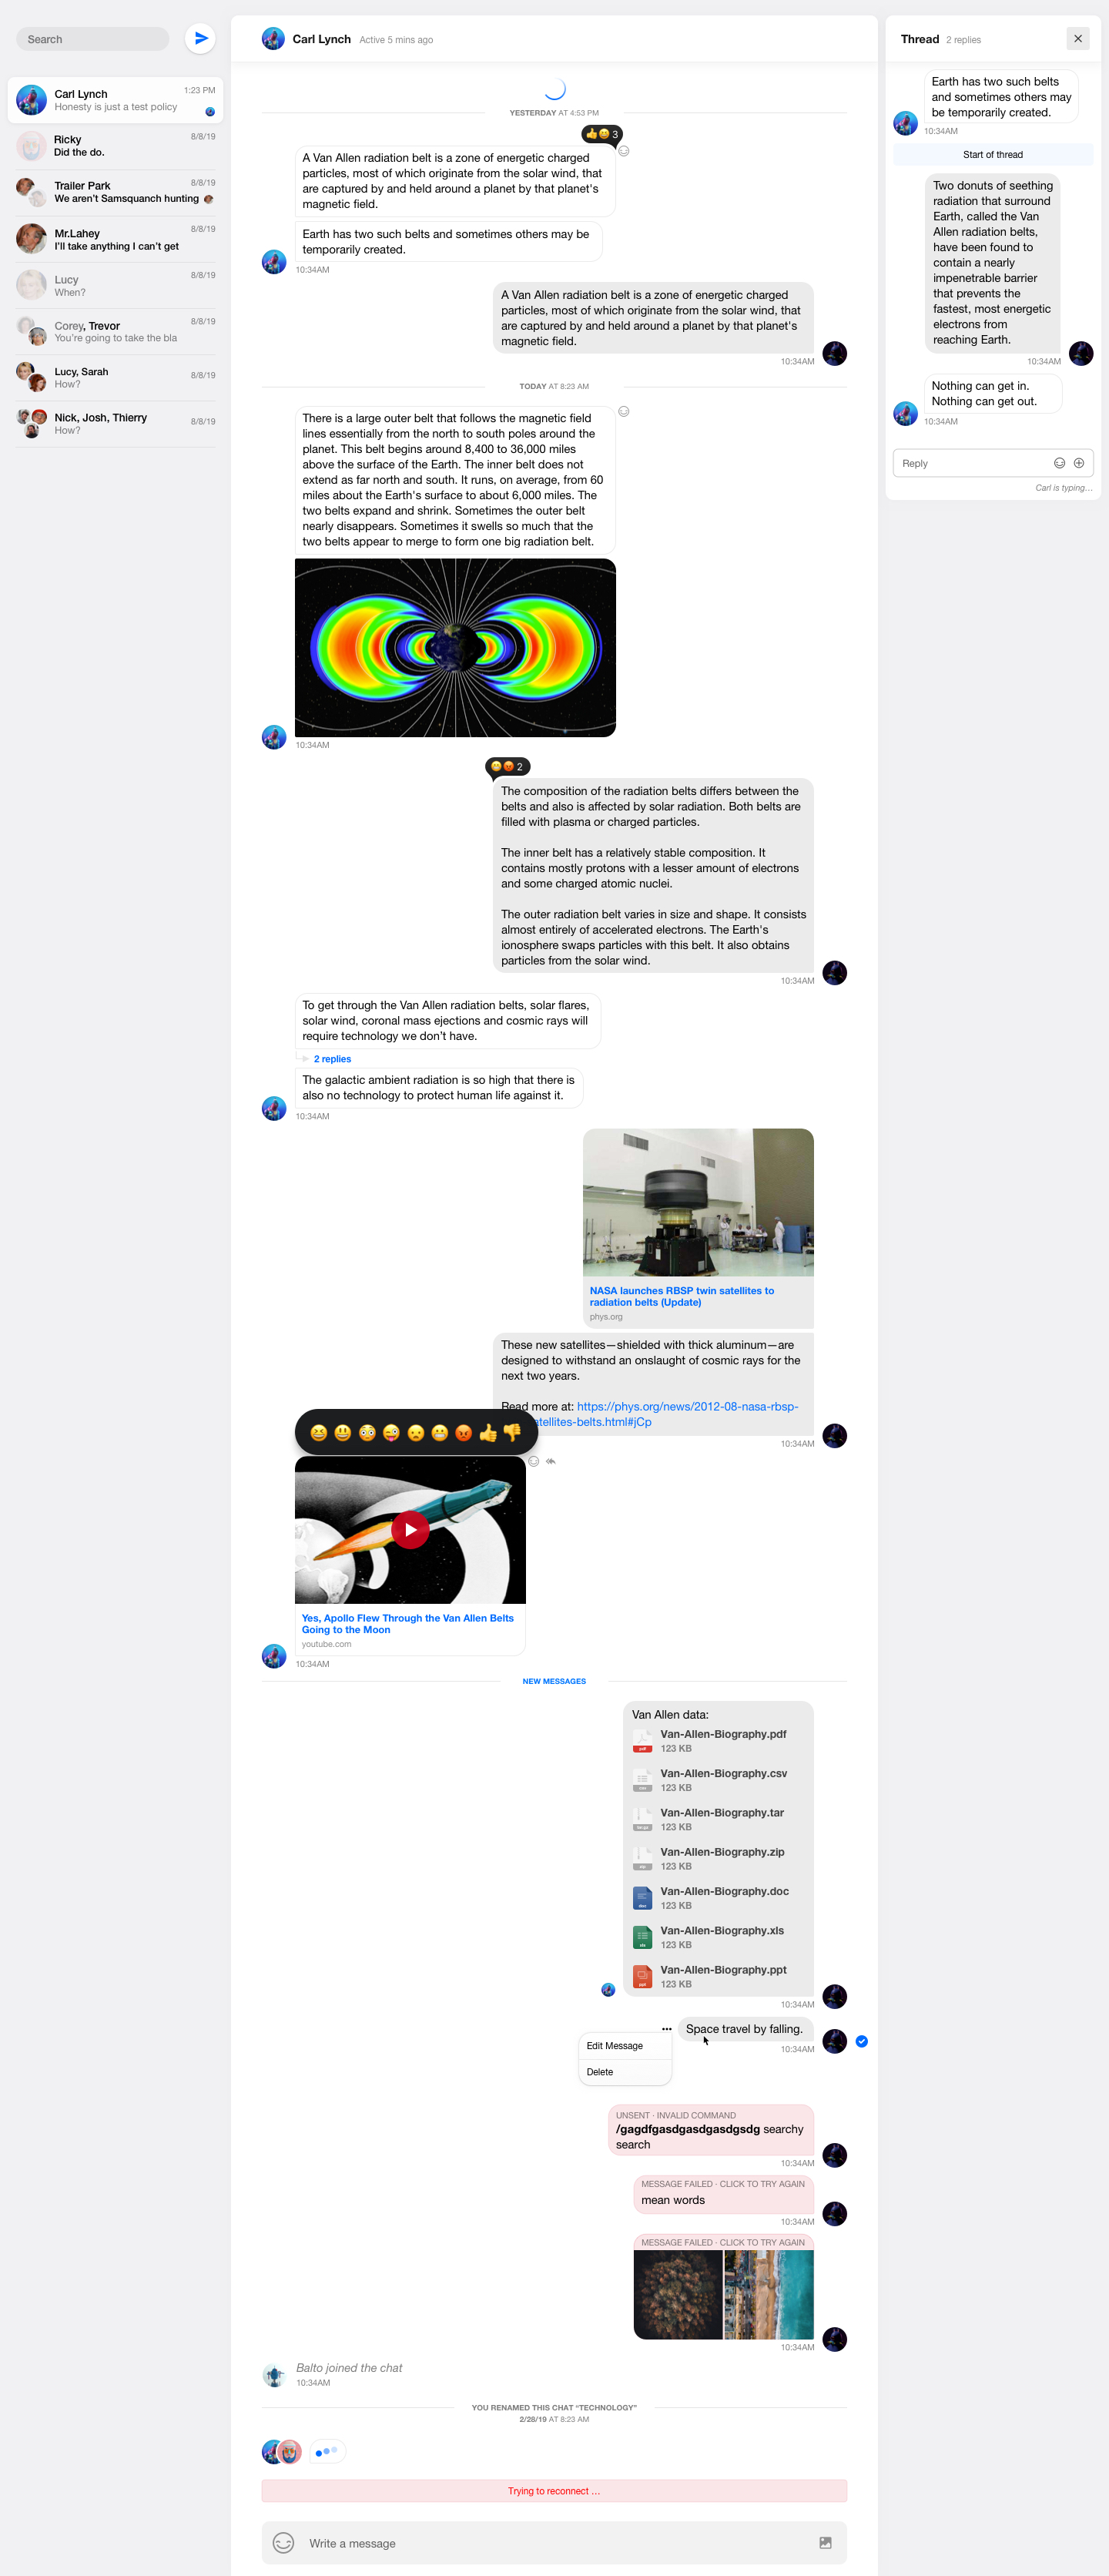 Chat Messaging UI Kit for Sketch - Craft a beautiful chat app UI design with our high fidelity Chat UI kit for Sketch. Chat interfaces for live chat, team collaboration, messaging, customer support and gaming are included. Design your responsive chat interface with all the essential elements required for fully interactive chat experiences.